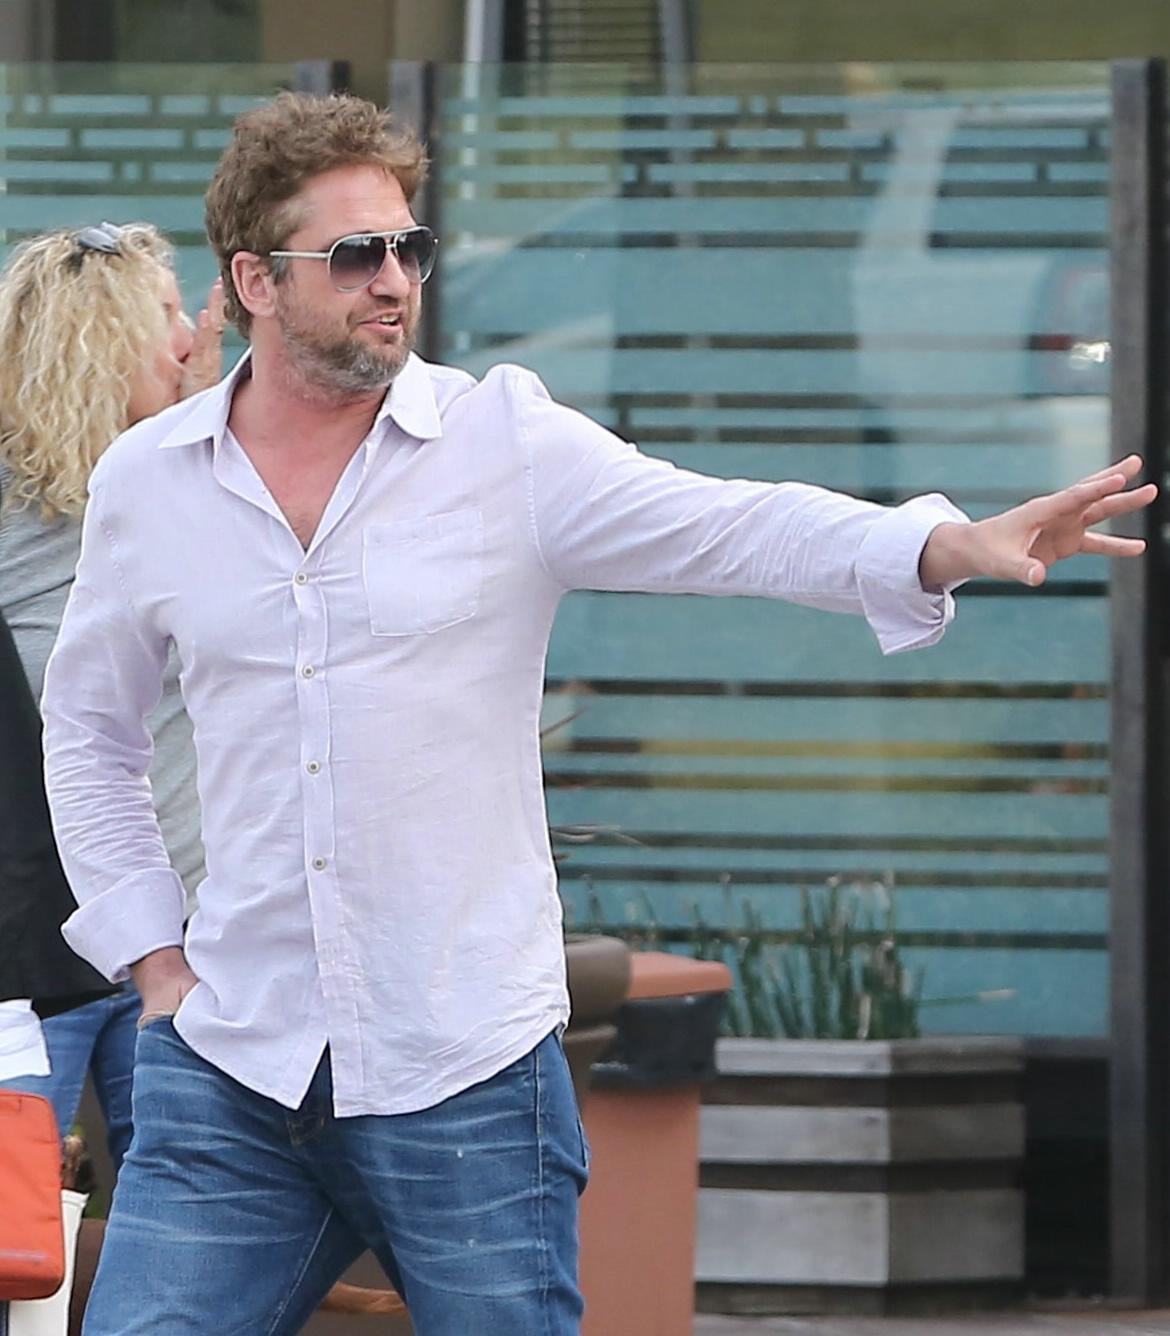 Gerard Butler Chills With A Female Friend in LA